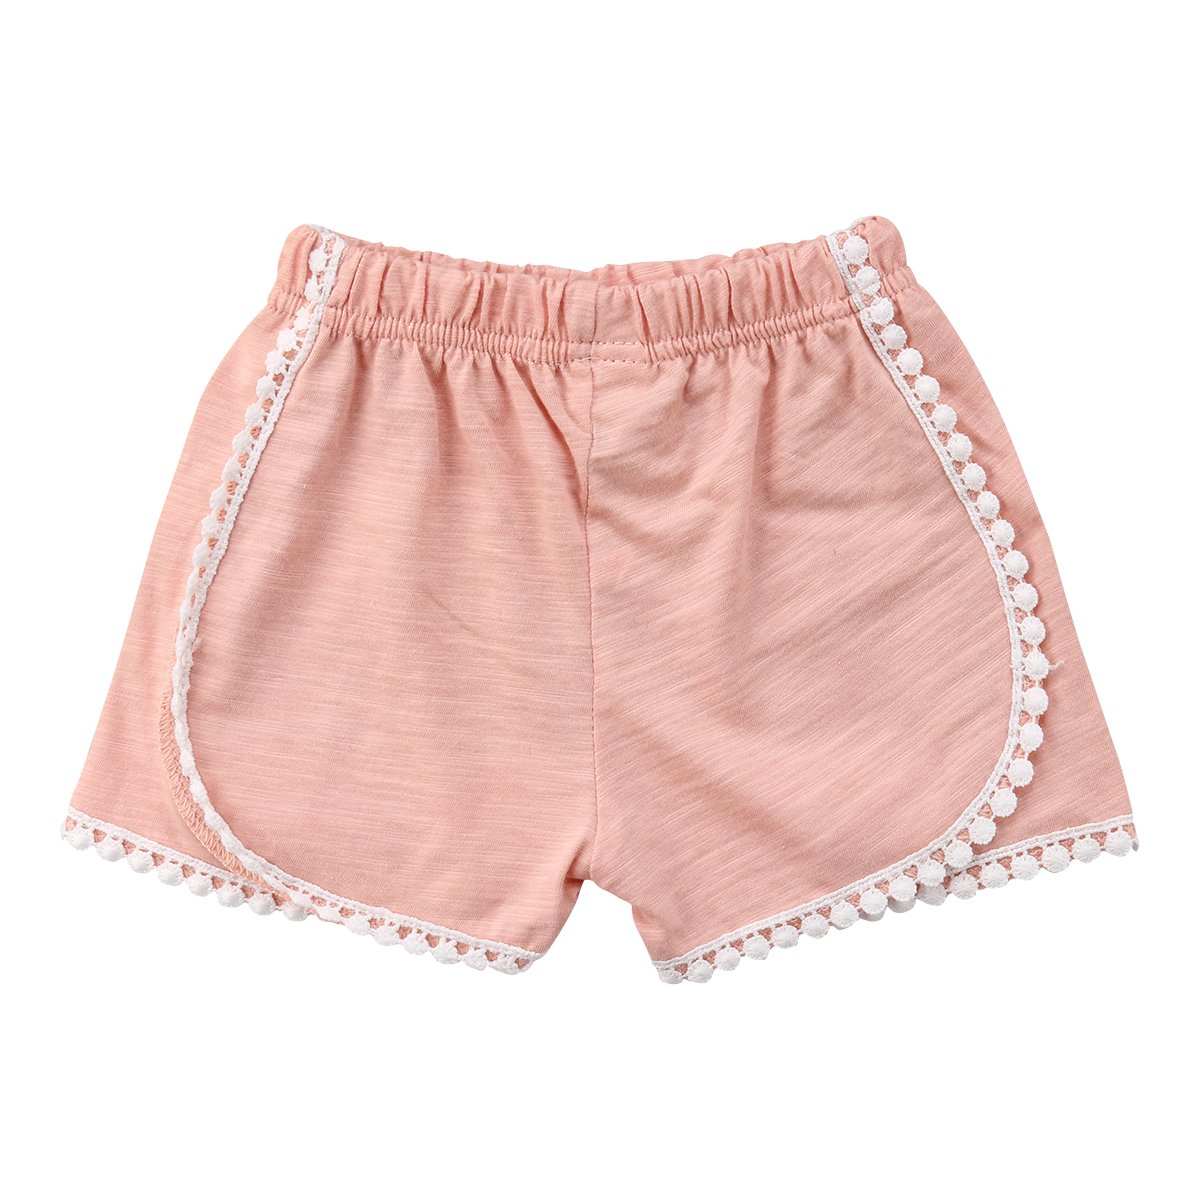 Billie Boho Shorts - Okiedokee Children's Boutique Kids Fashion Baby Clothes Cool Children's Clothing